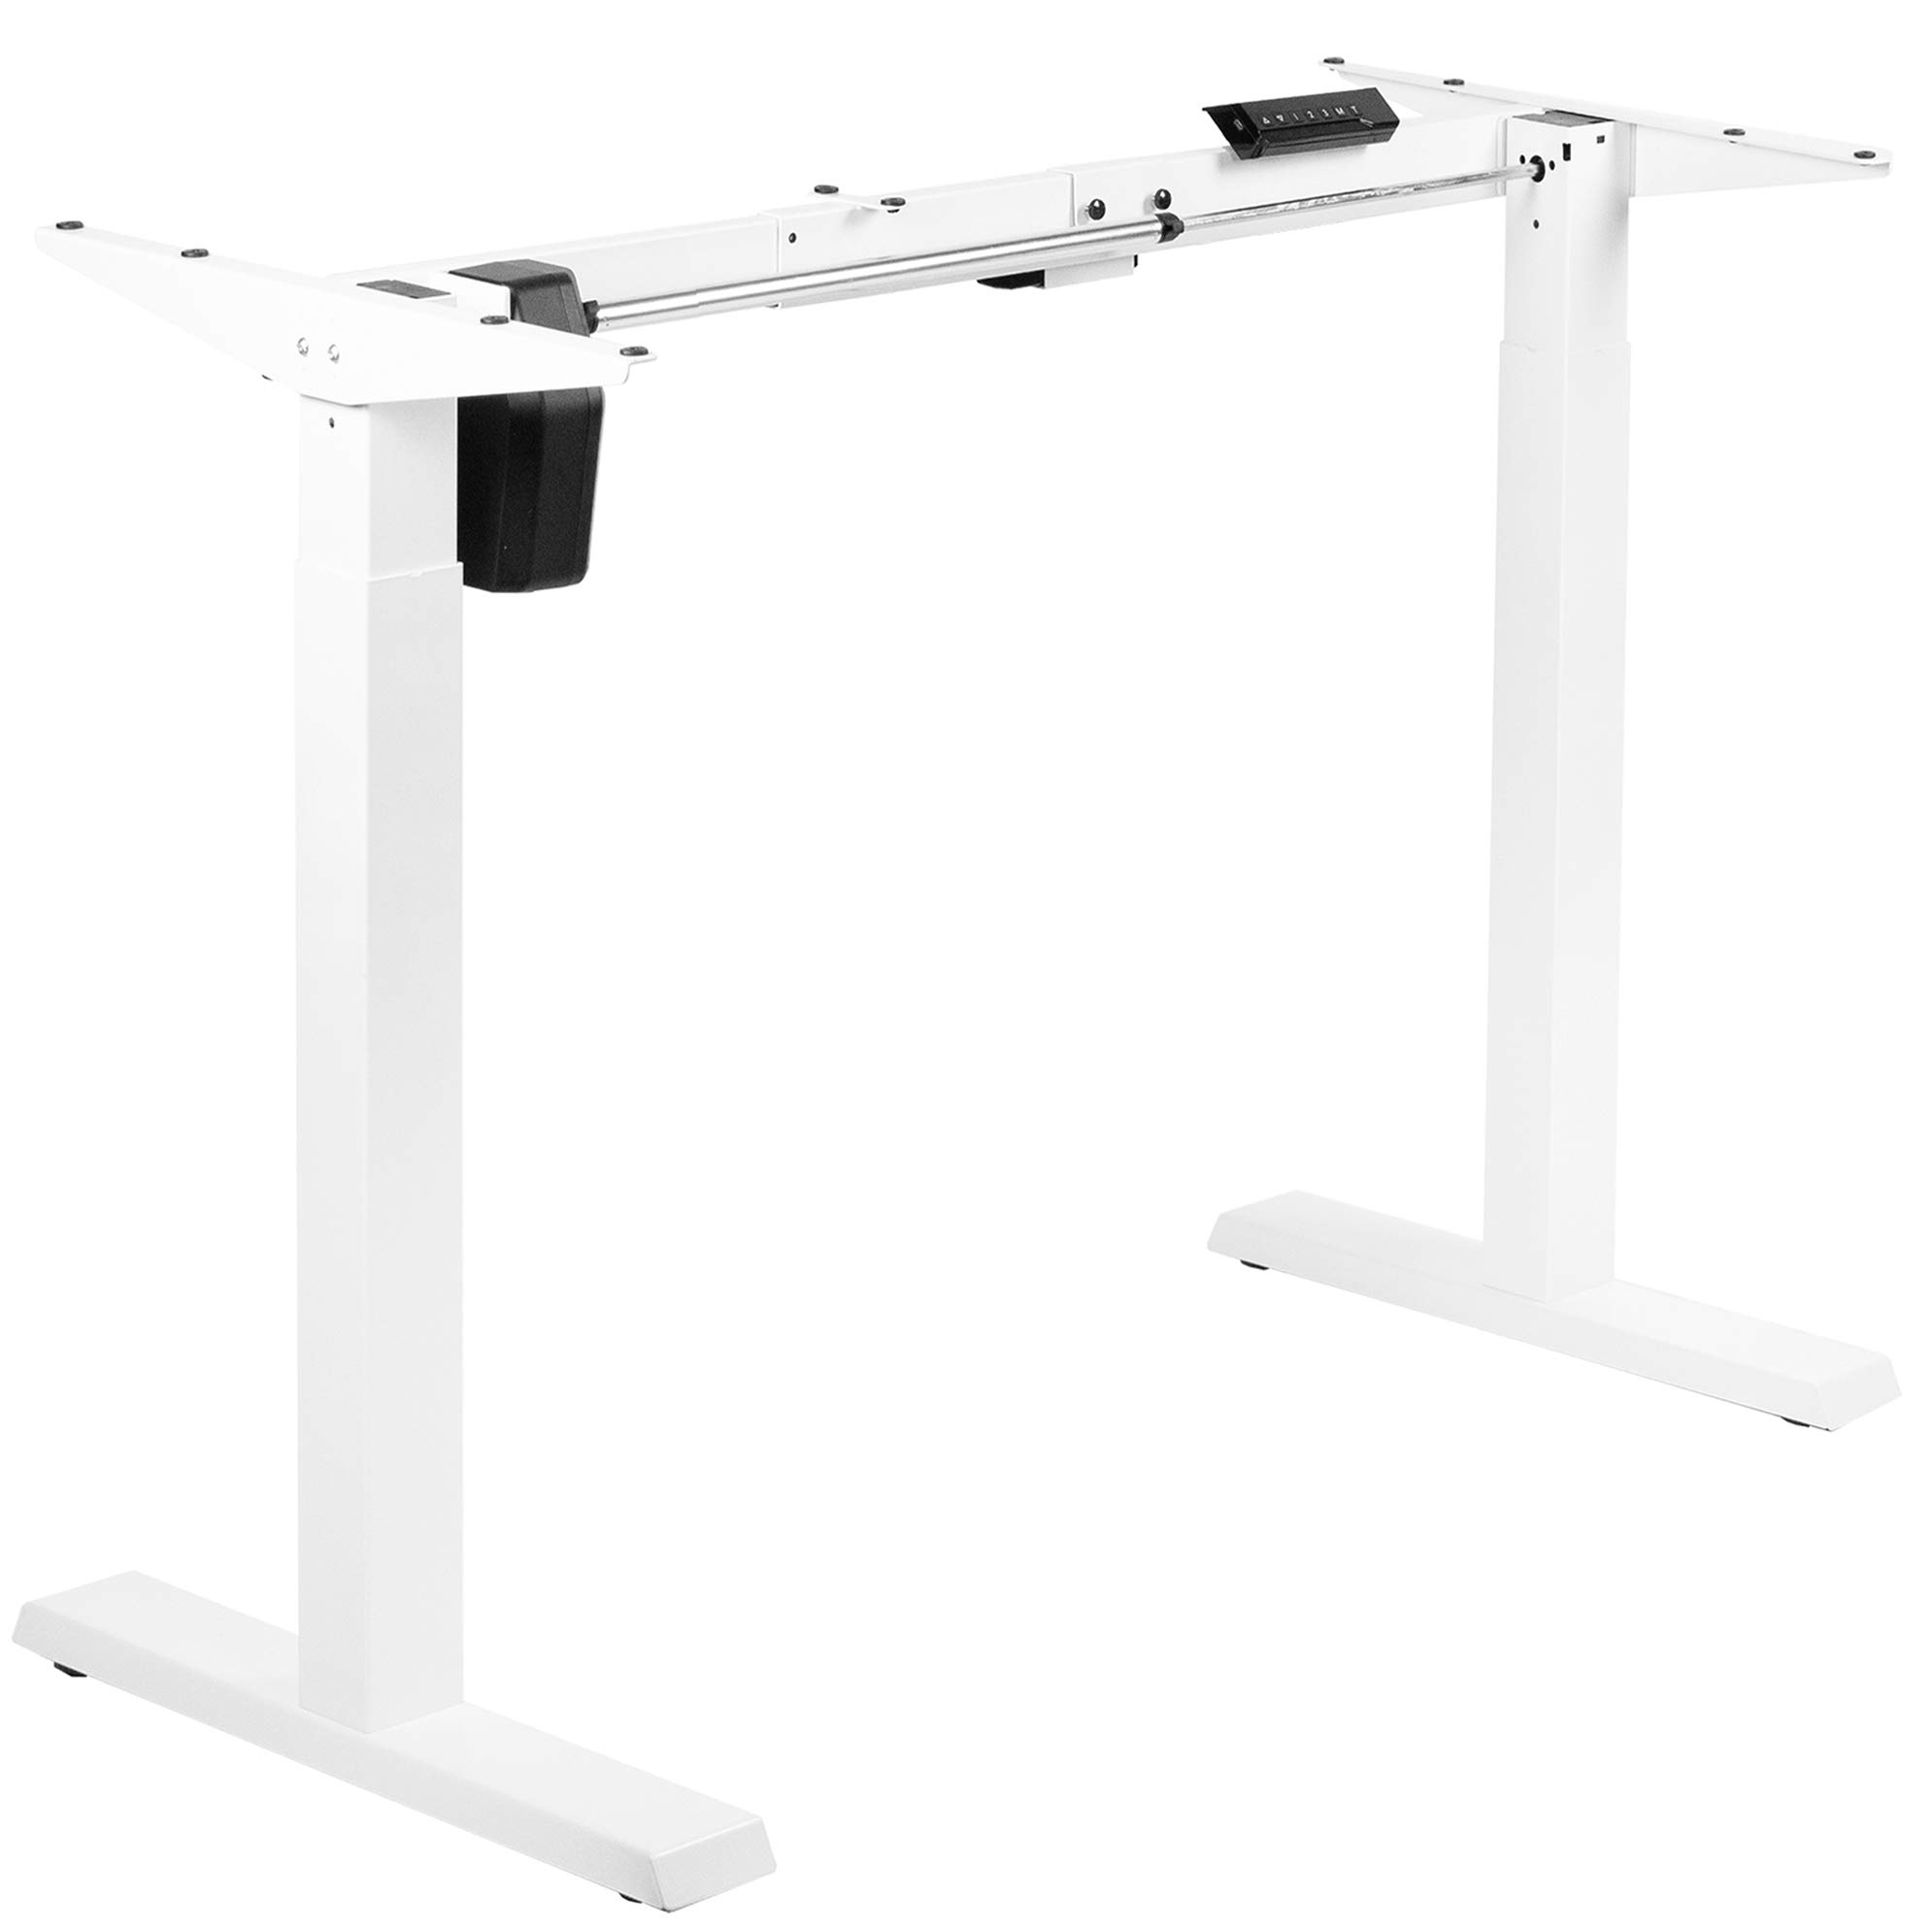 VIVO Compact Electric Stand Up Desk Frame for 34 to 71 inch Table Tops, Single Motor Ergonomic Standing Height Adjustable Base with Controller, White (DESK-E151EW)